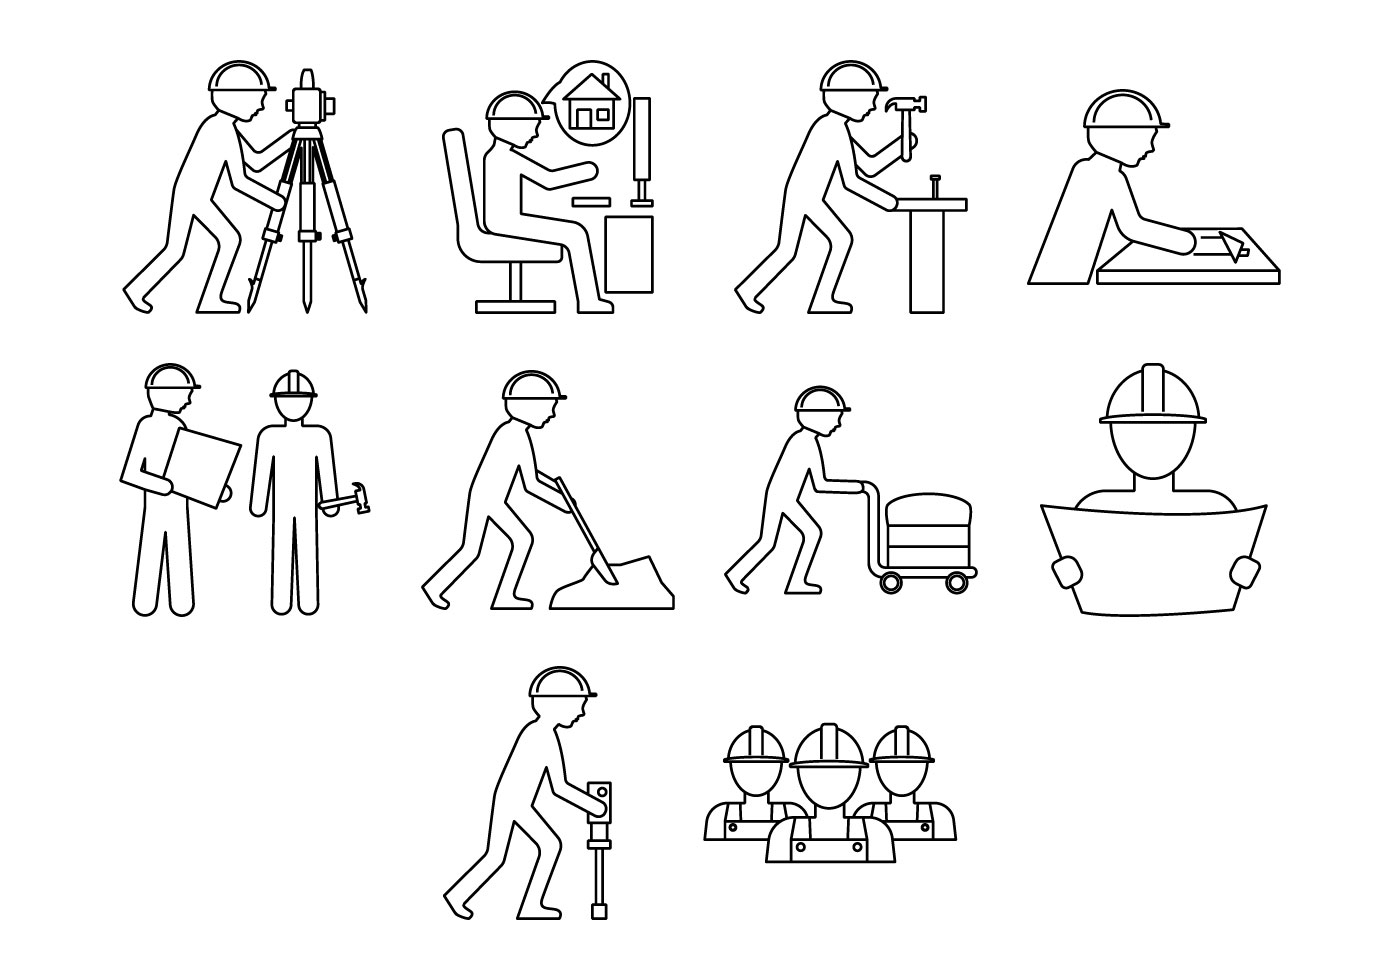 Free Civilwork Icon Vector